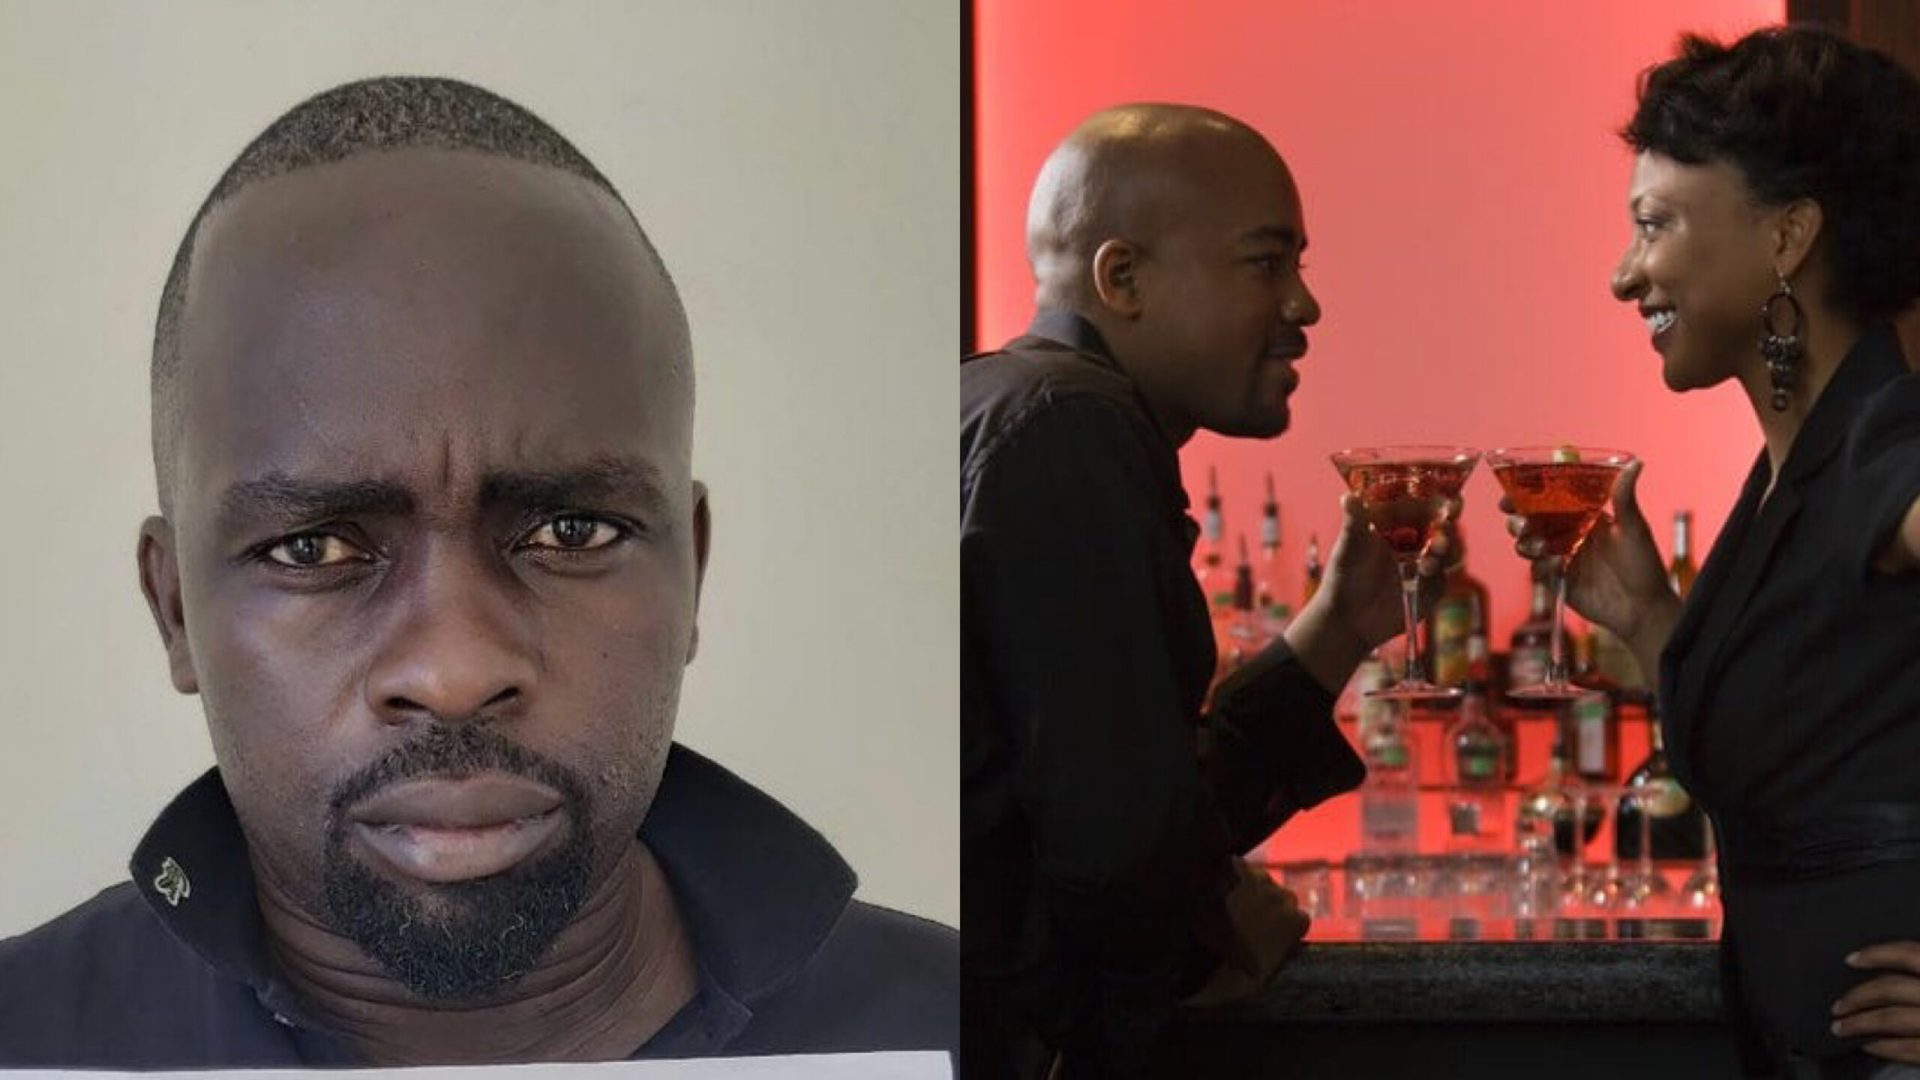 Man buys drink for lady at a bar, invites her to his house and kills her